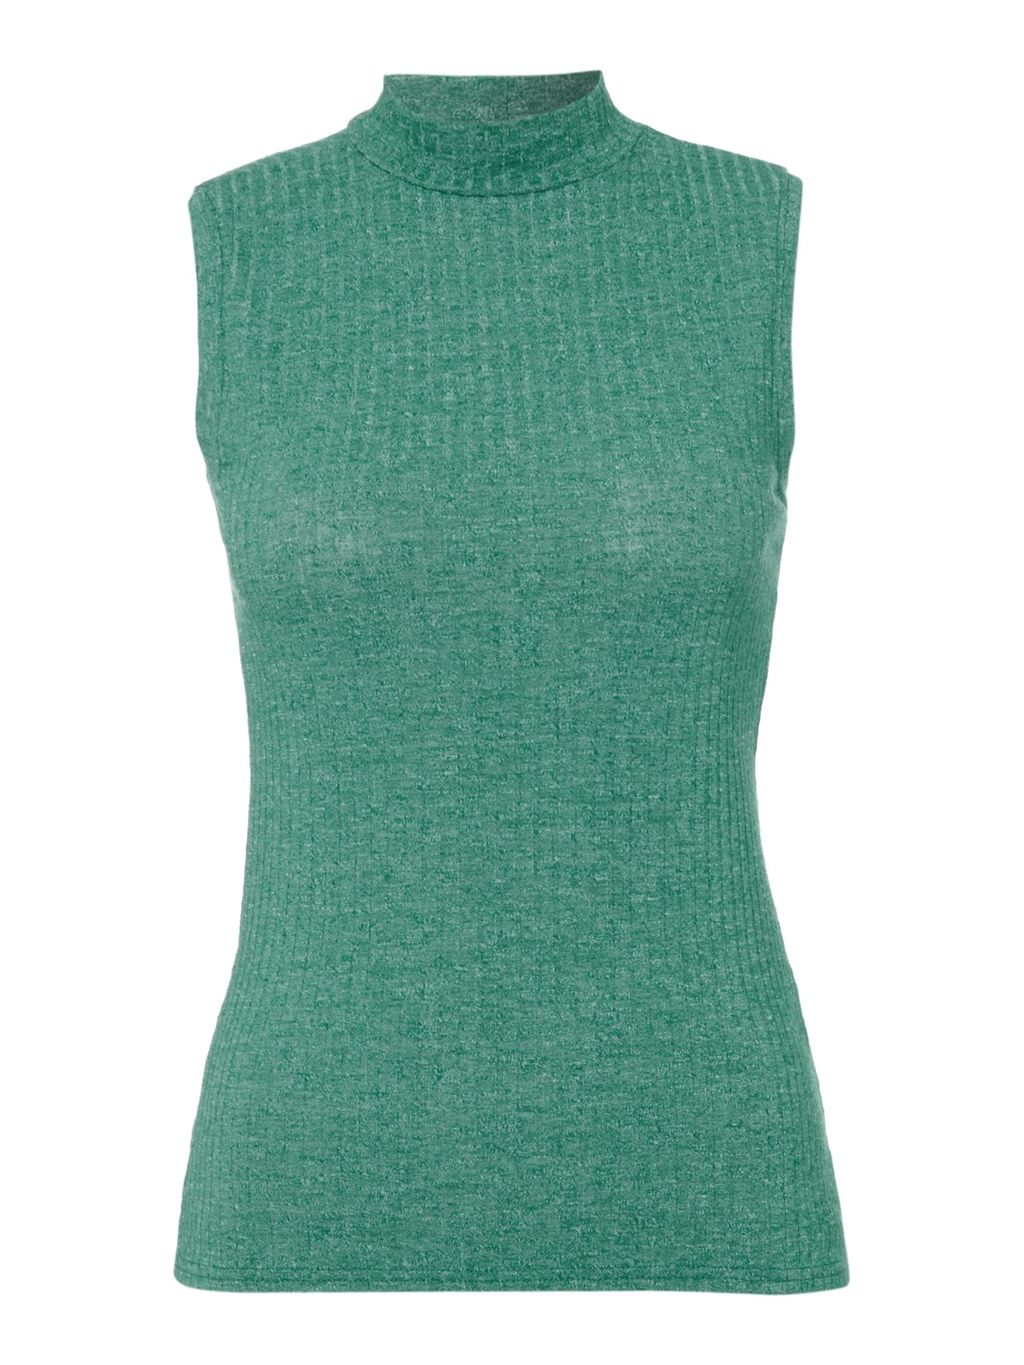 Tilly Turtle Neck Sleeveless Top, Green - pattern: plain; sleeve style: sleeveless; neckline: roll neck; predominant colour: emerald green; occasions: casual; length: standard; style: top; fibres: polyester/polyamide - stretch; fit: body skimming; sleeve length: sleeveless; texture group: jersey - clingy; pattern type: fabric; season: s/s 2016; wardrobe: highlight